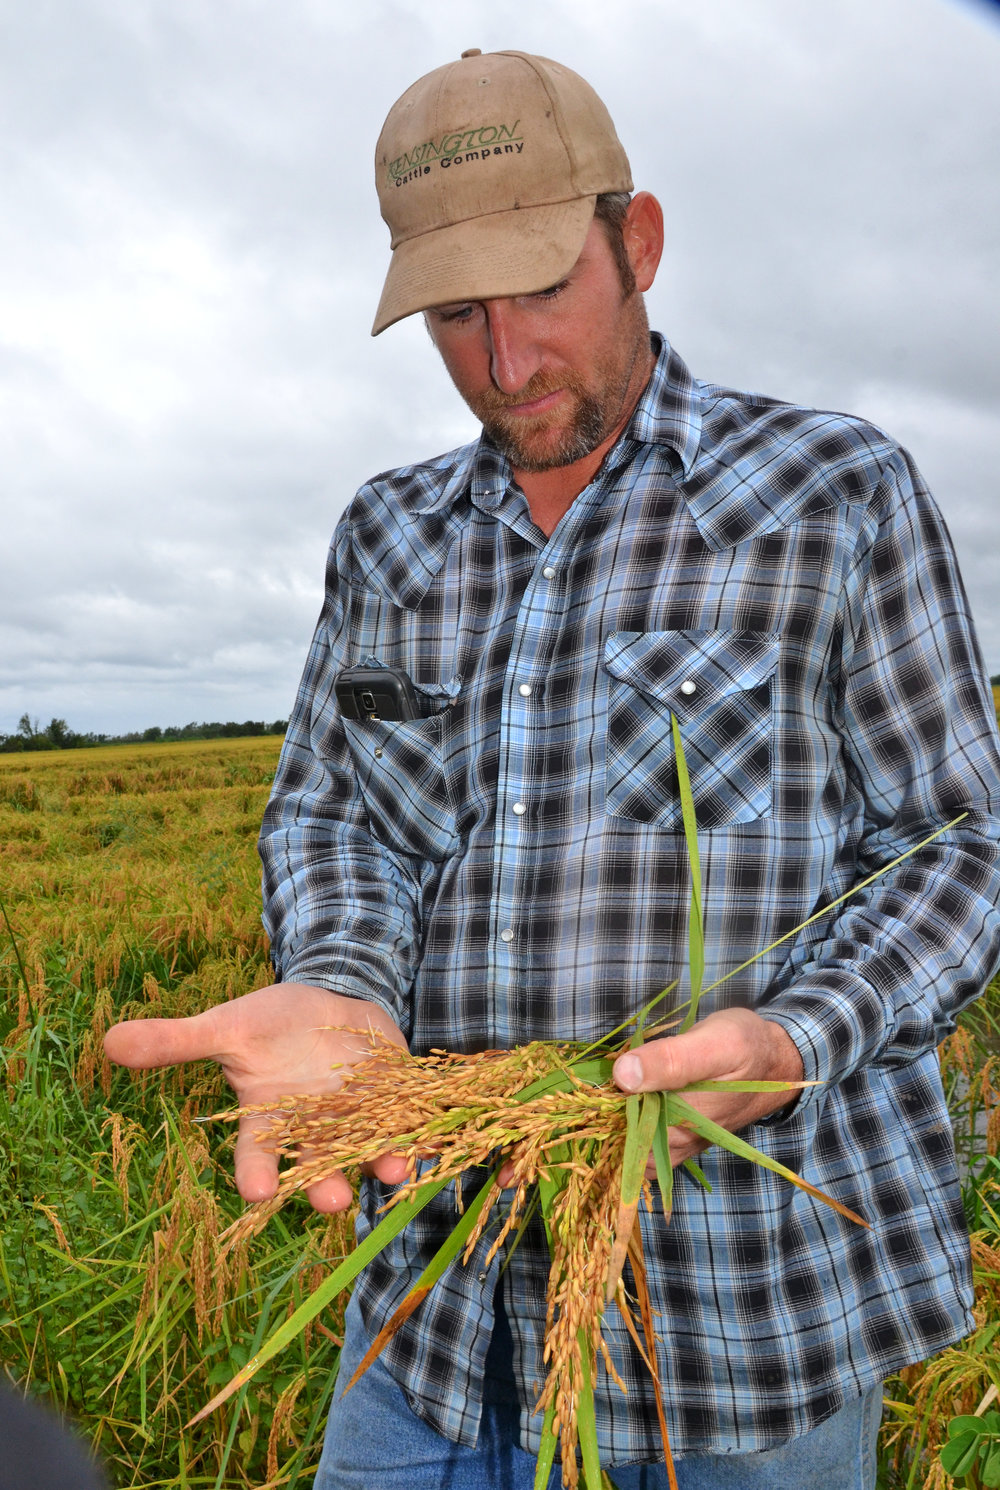 Farmer Adam Habetz examines panicles of rice from his farm near Vinton, Louisiana. The rice was starting to sprout after being wet, but not flooded, from heavy rainfall brought by Tropical Storm Harvey. Photo by Bruce Schultz/LSU AgCenter